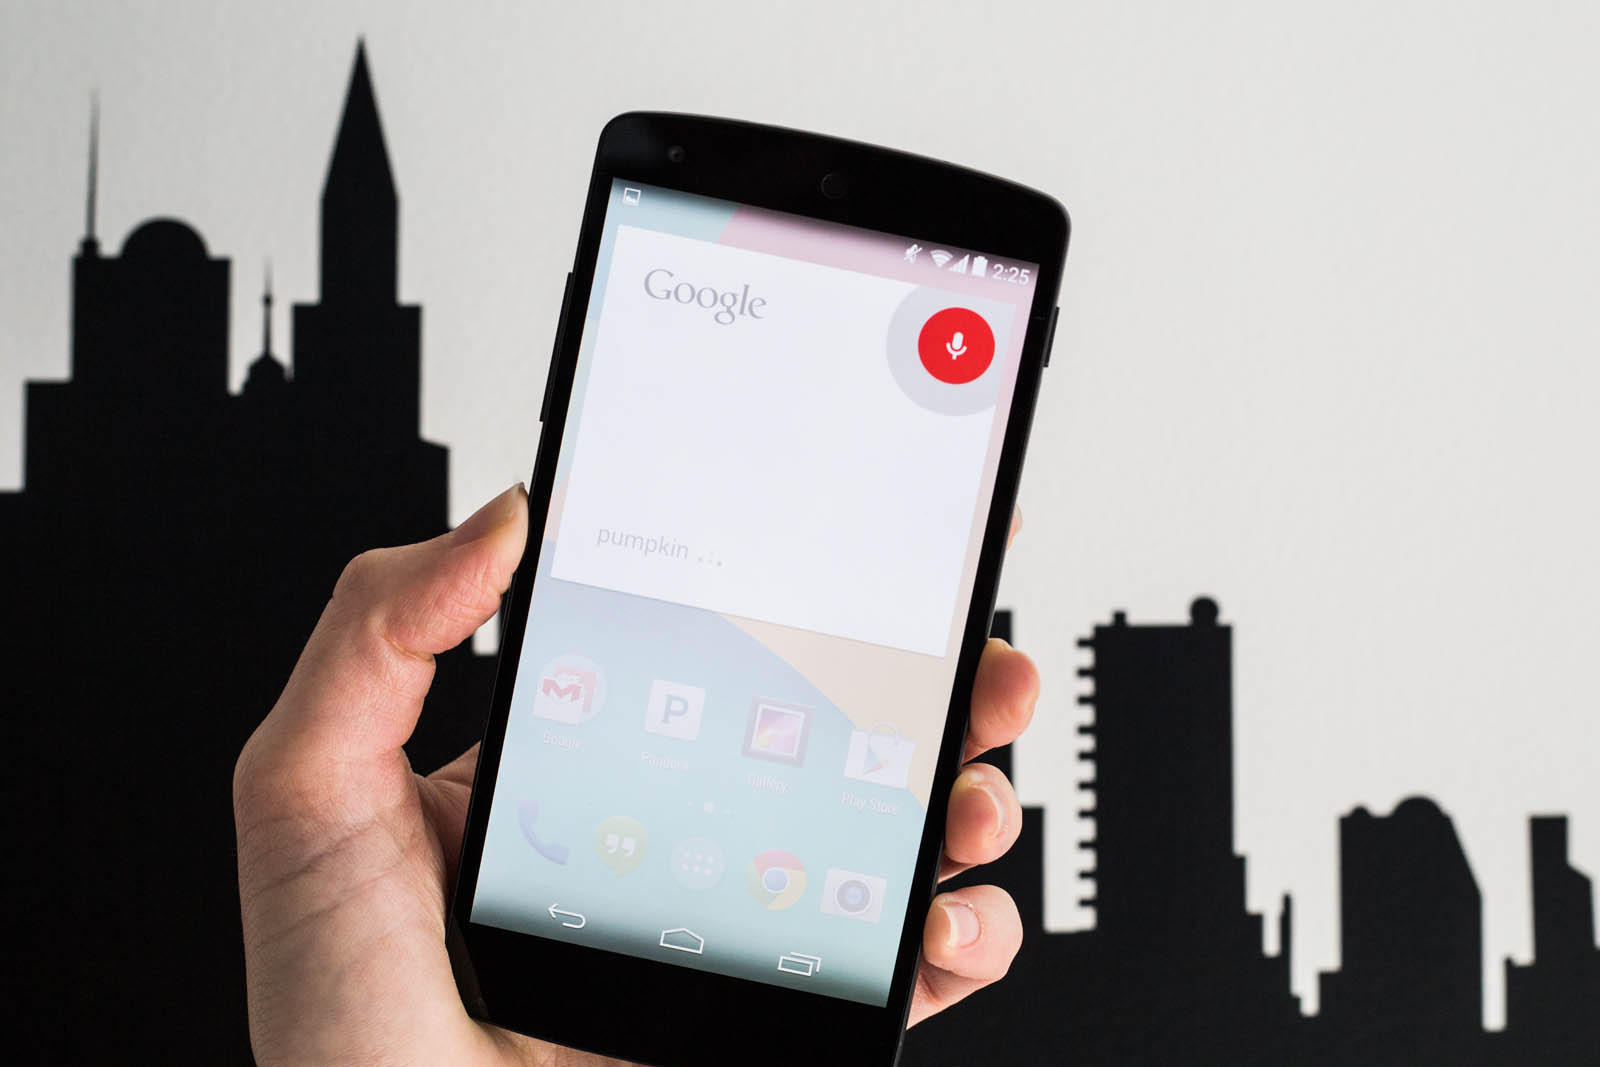 List Of Google Now Commands That You Should Know